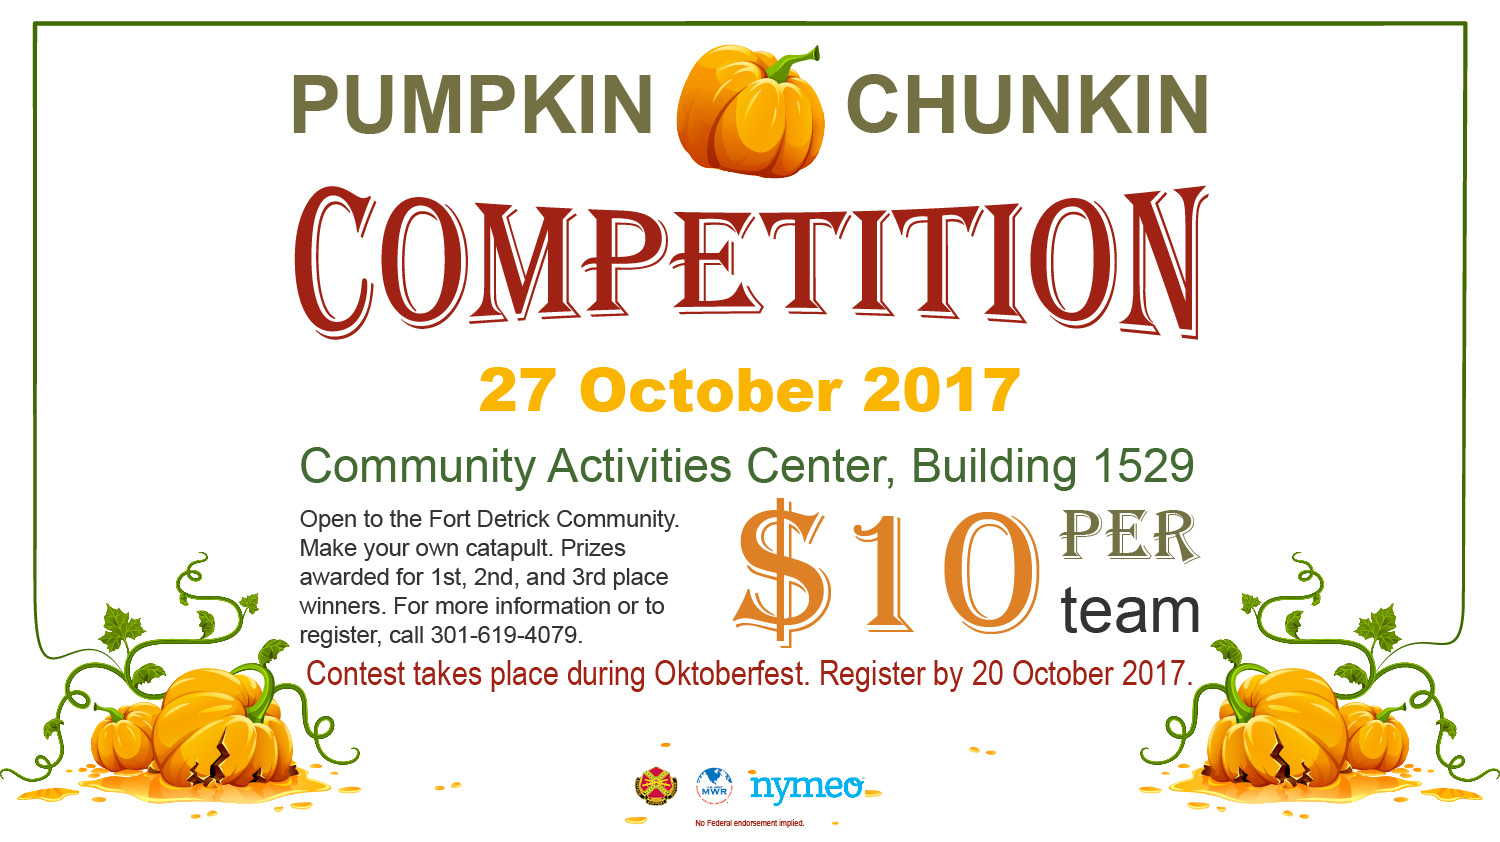 PUMPKIN CHUNKIN COMPETITION